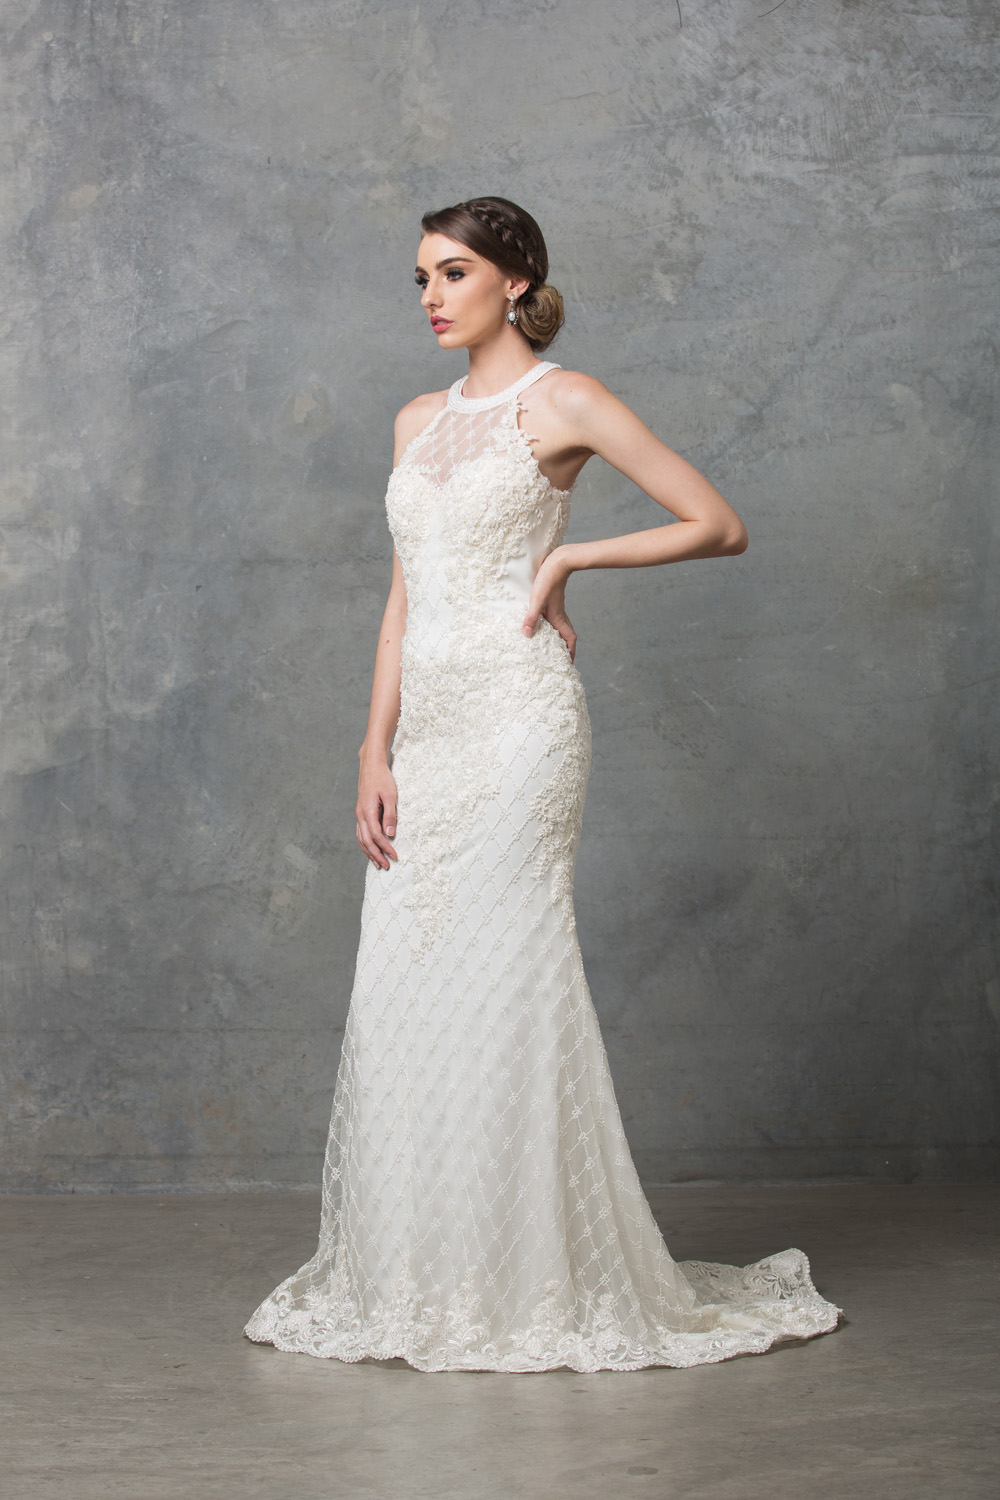 Clarissa beaded high neck wedding dress side